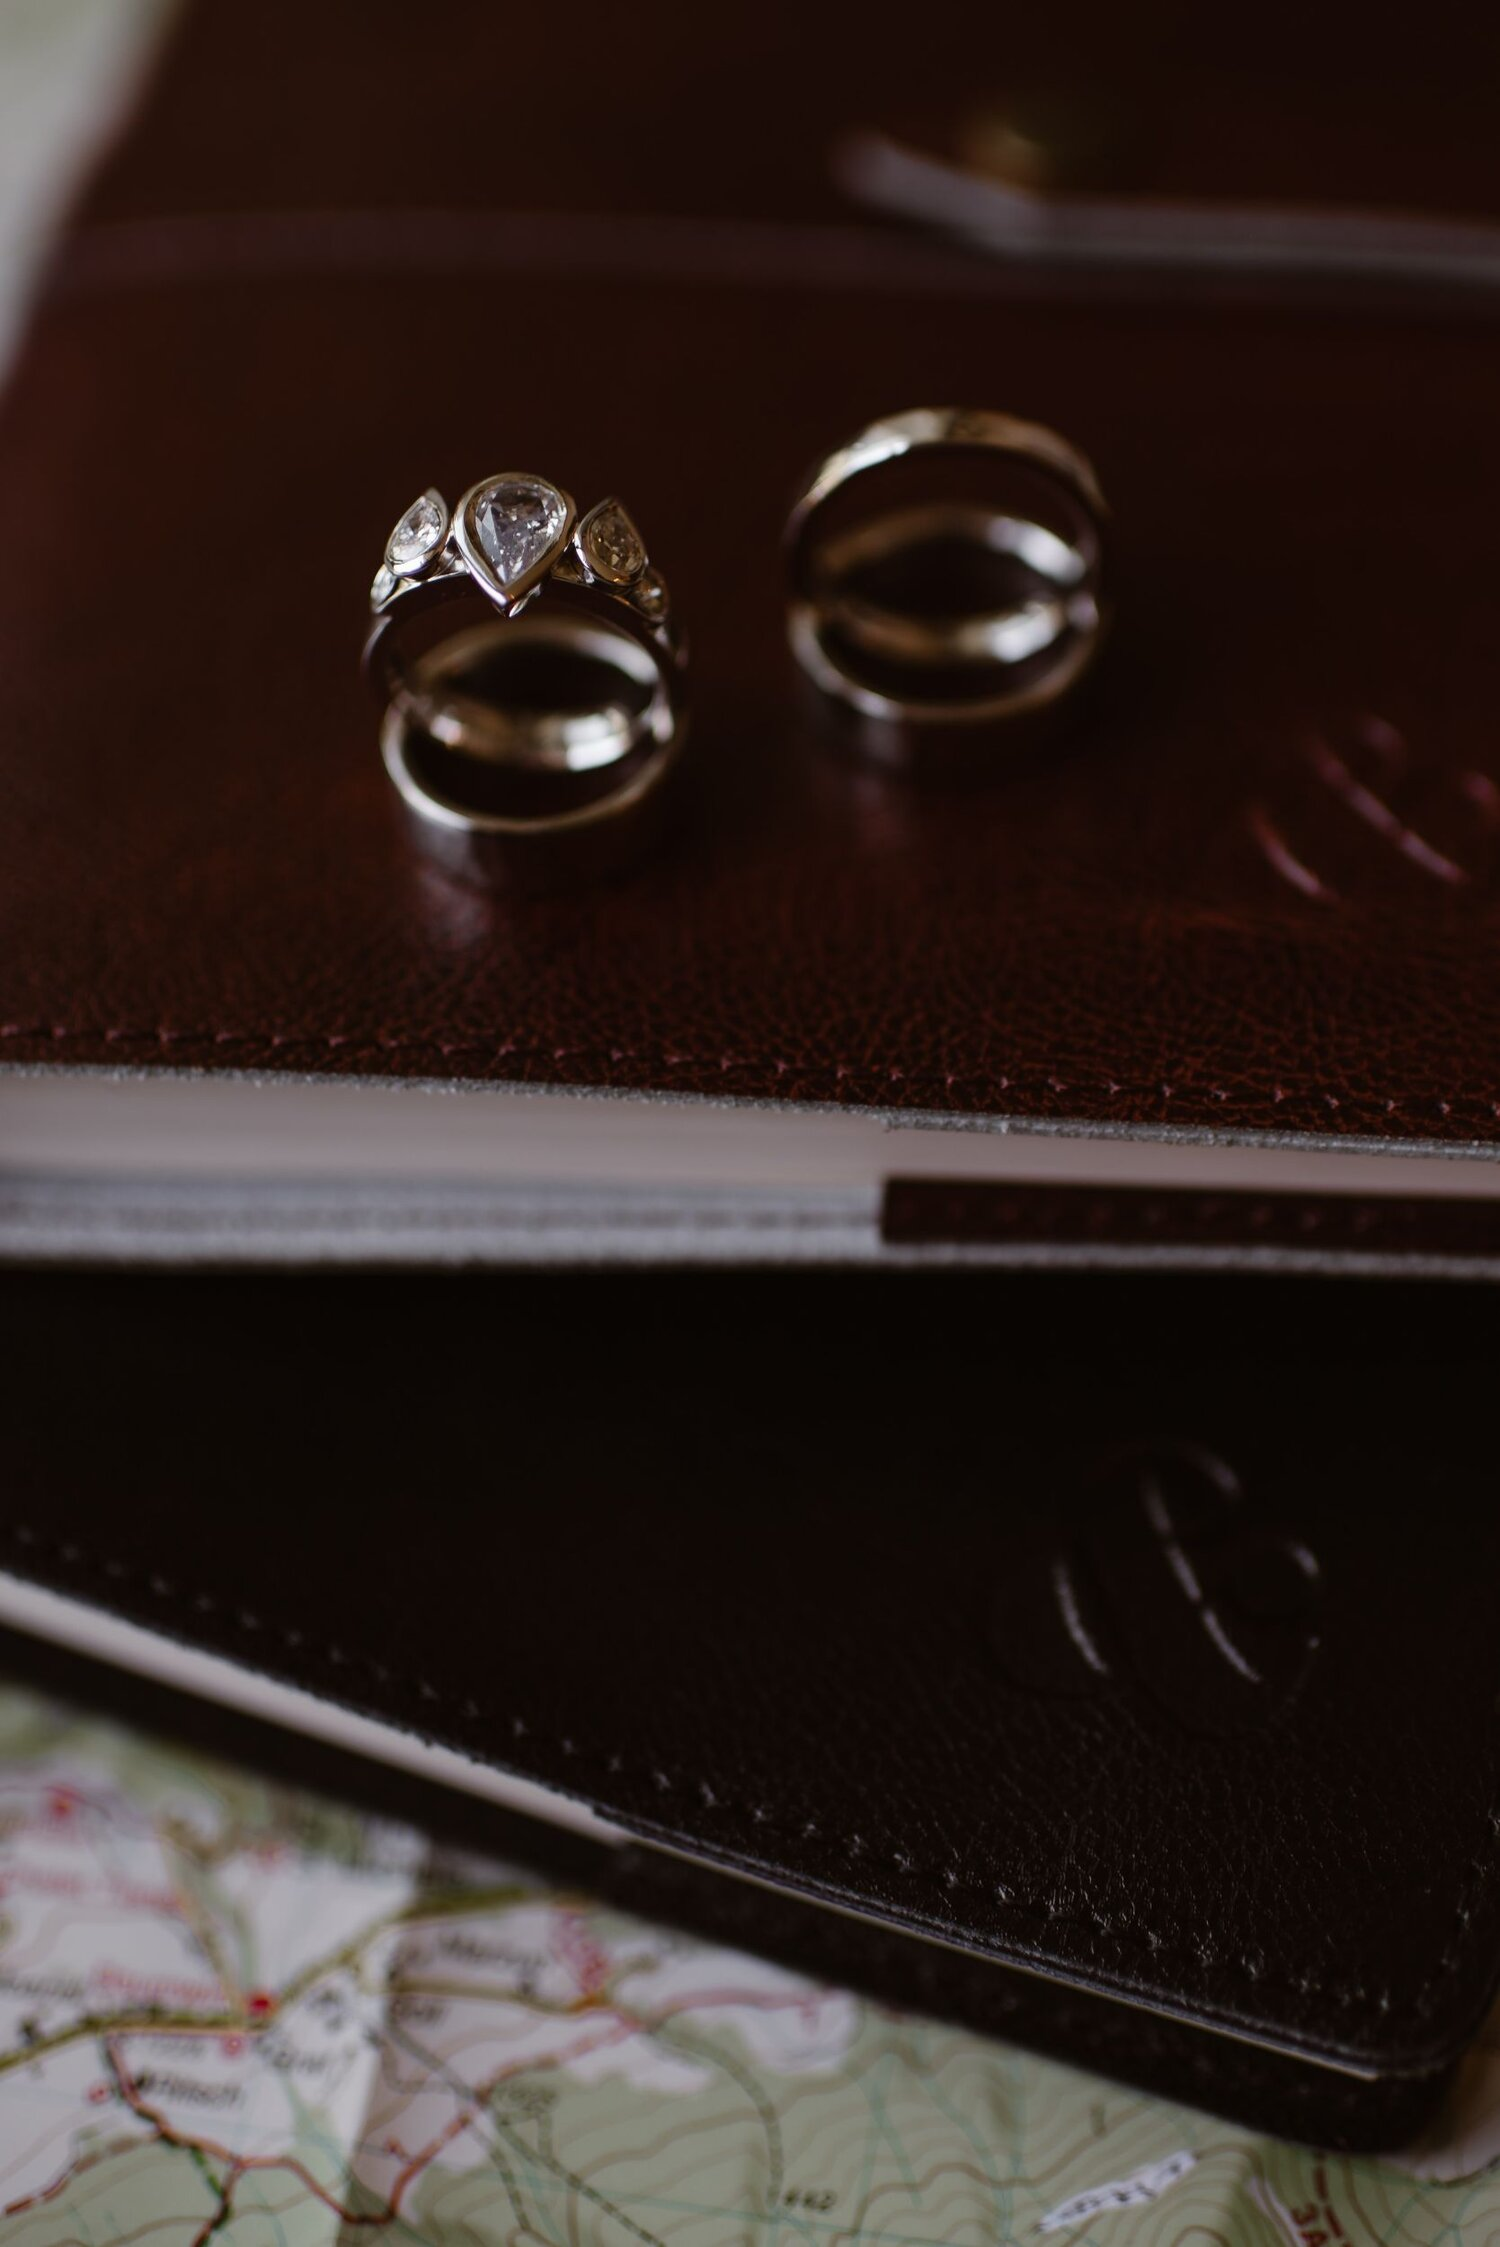 A close-up of wedding rings.